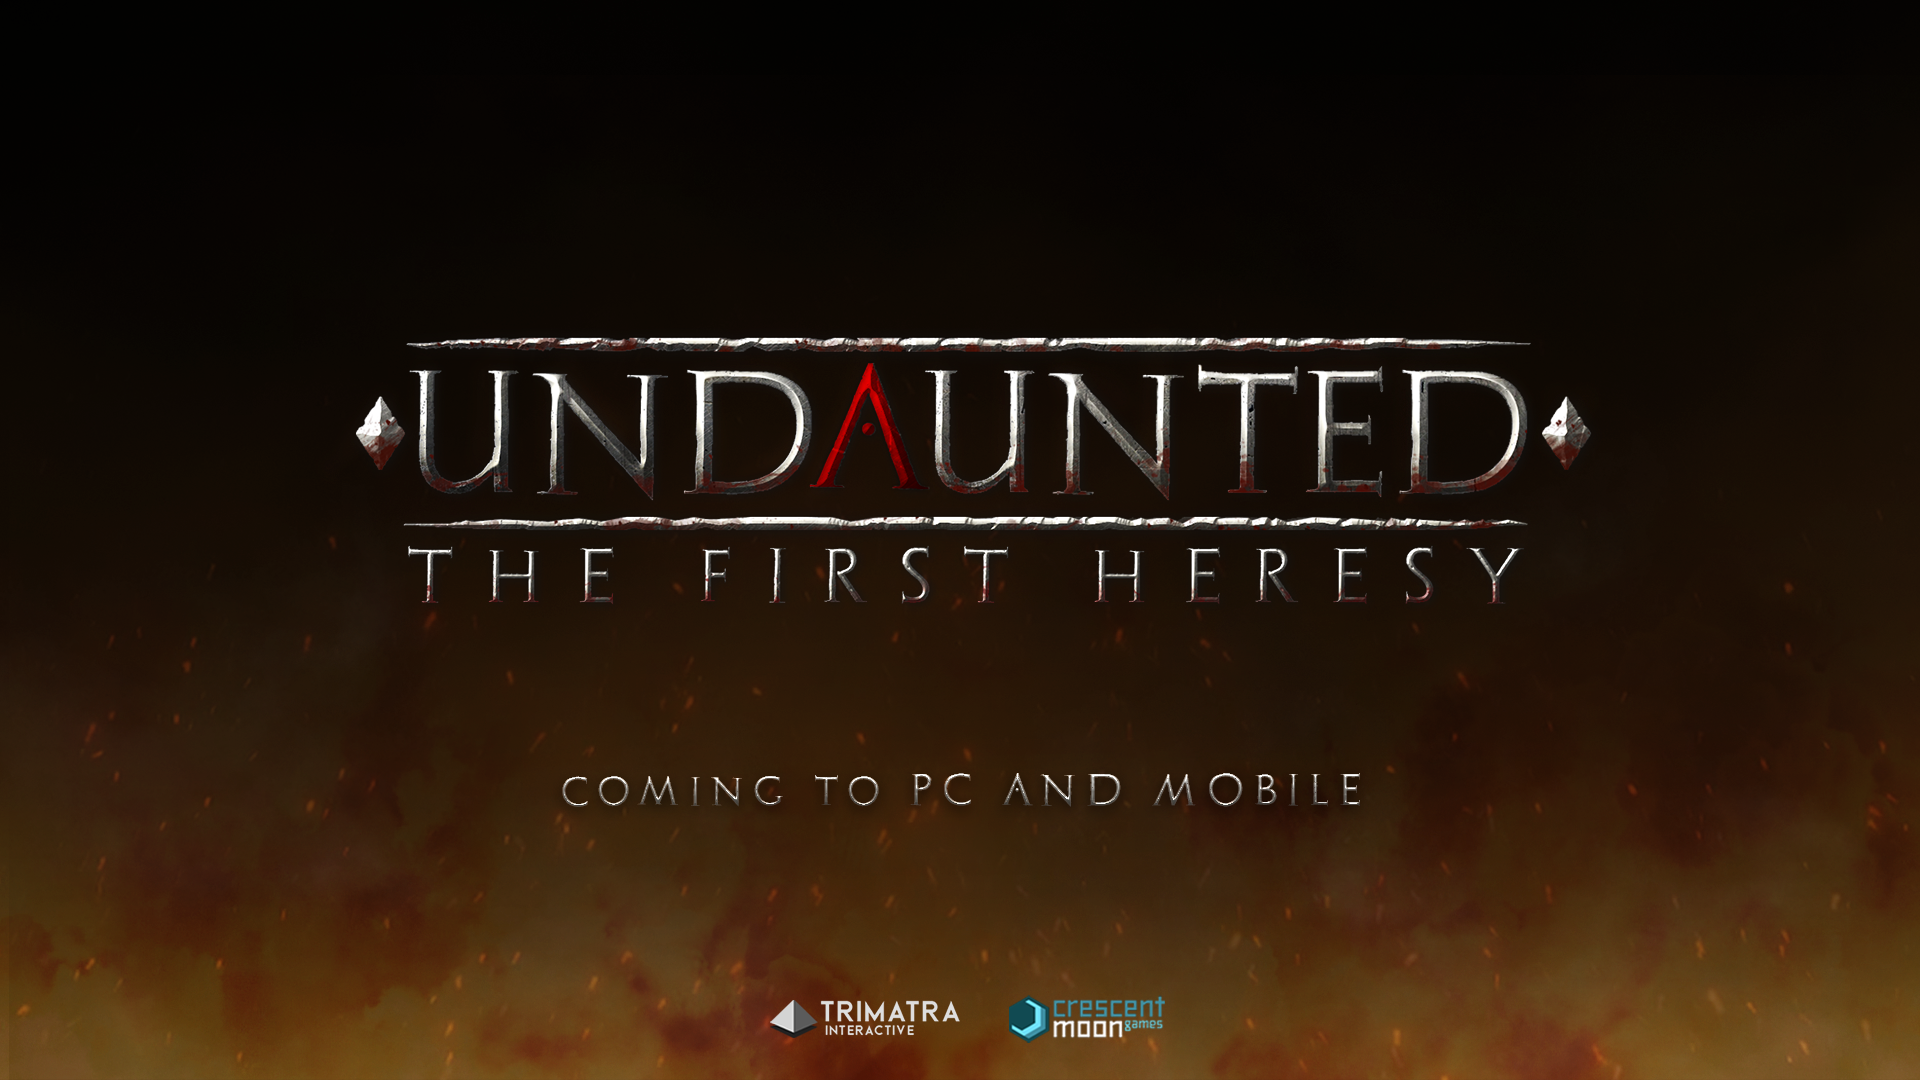 Undaunted: The First Heresy - New rogue-lite game inspired by Doom and Heretic